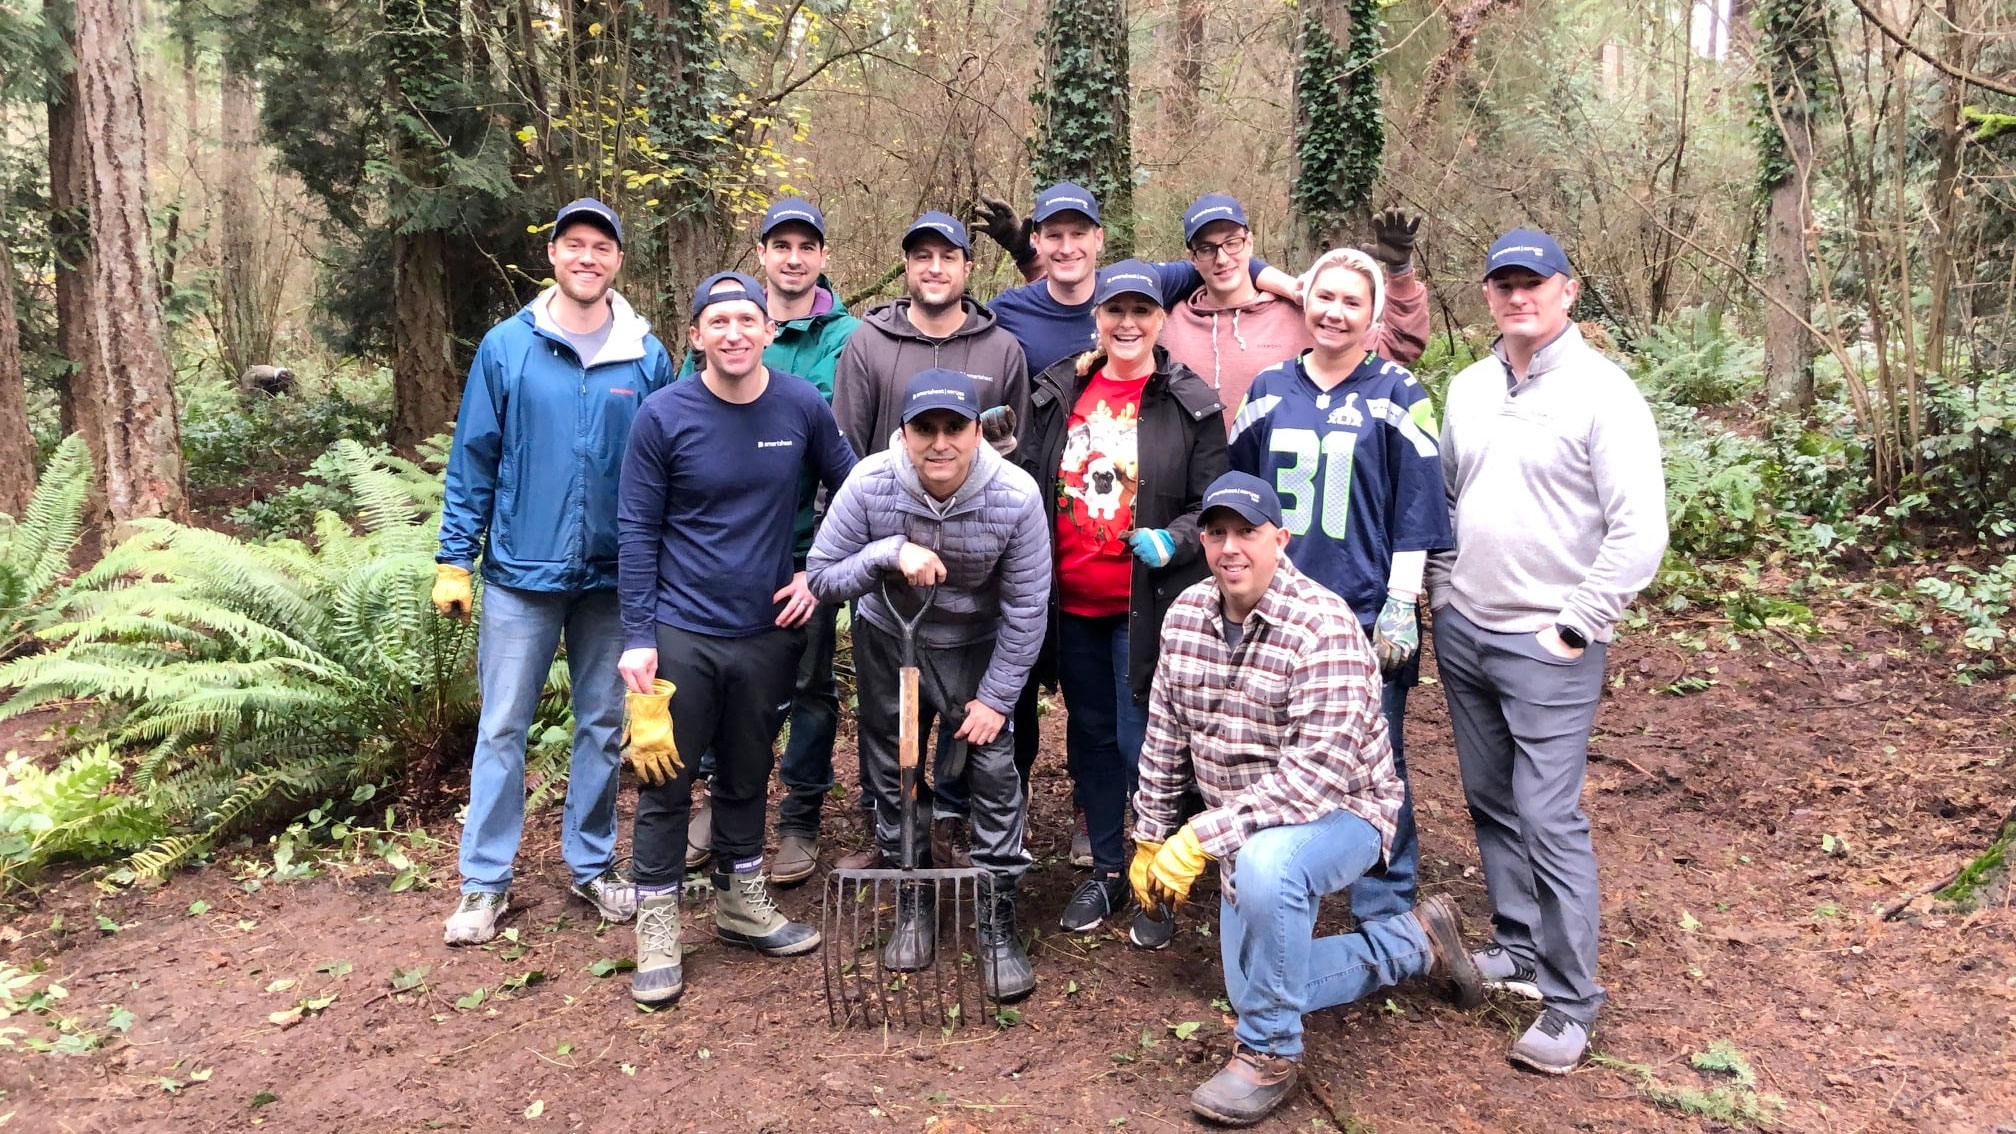 Smartsheet employees pose for a group photos amidst ferns and a wooded forest area.